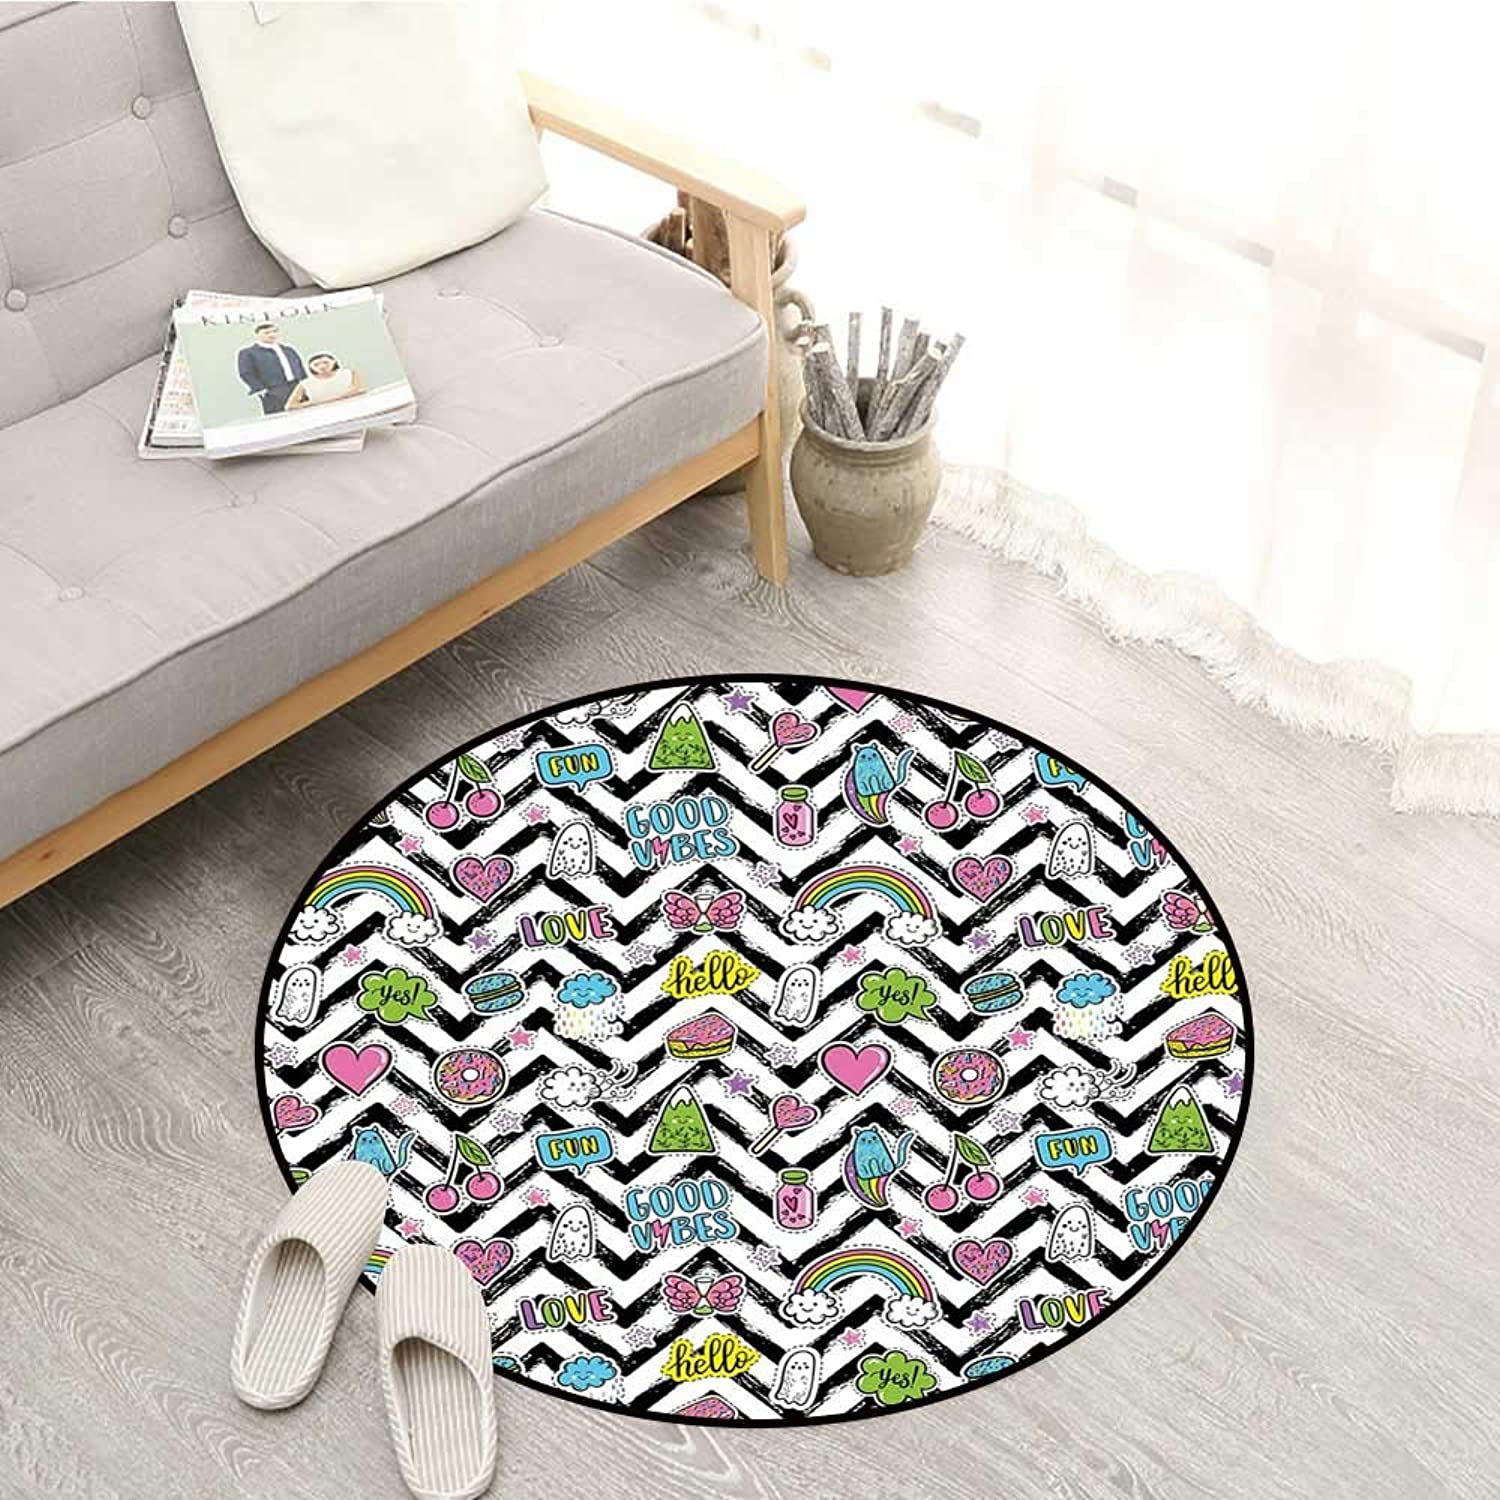 Good Vibes Living Room Mat Black Zigzags with colorful Cartoon Figures Cute Clouds Rainbow Ghost and Sweets Rustic Home Decor 4'11  Multicolor